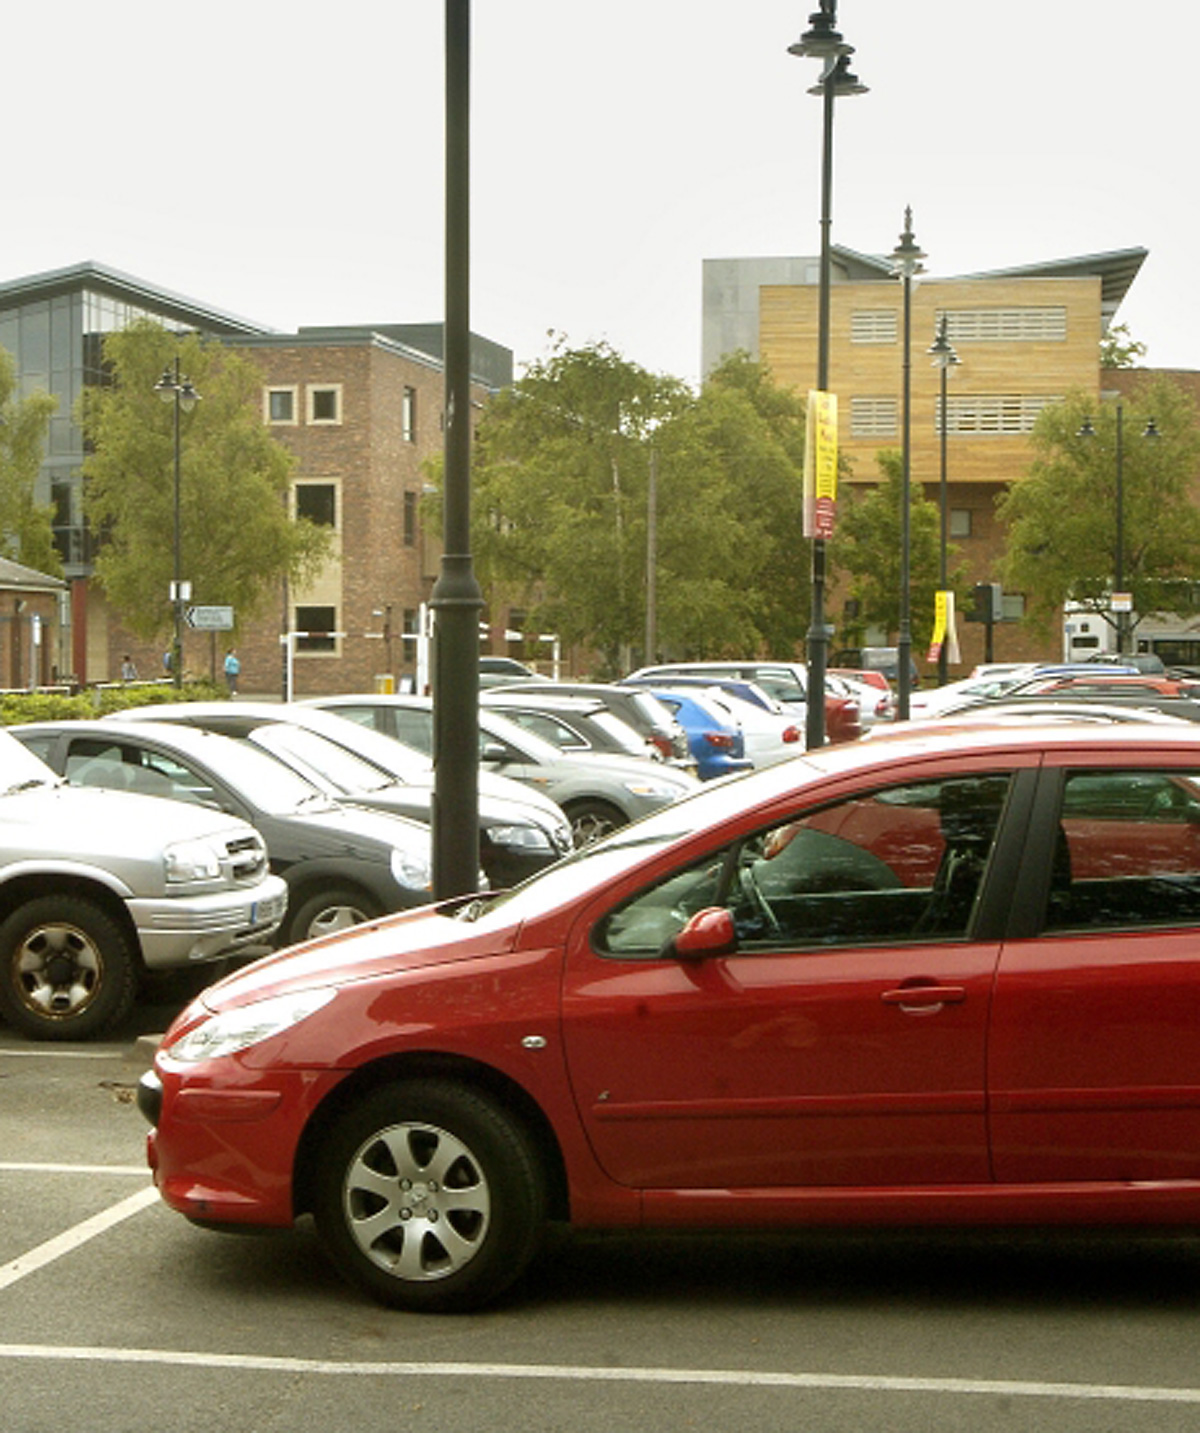 The Union Terrace car-park will be among the 13 suspending charges on February 1.